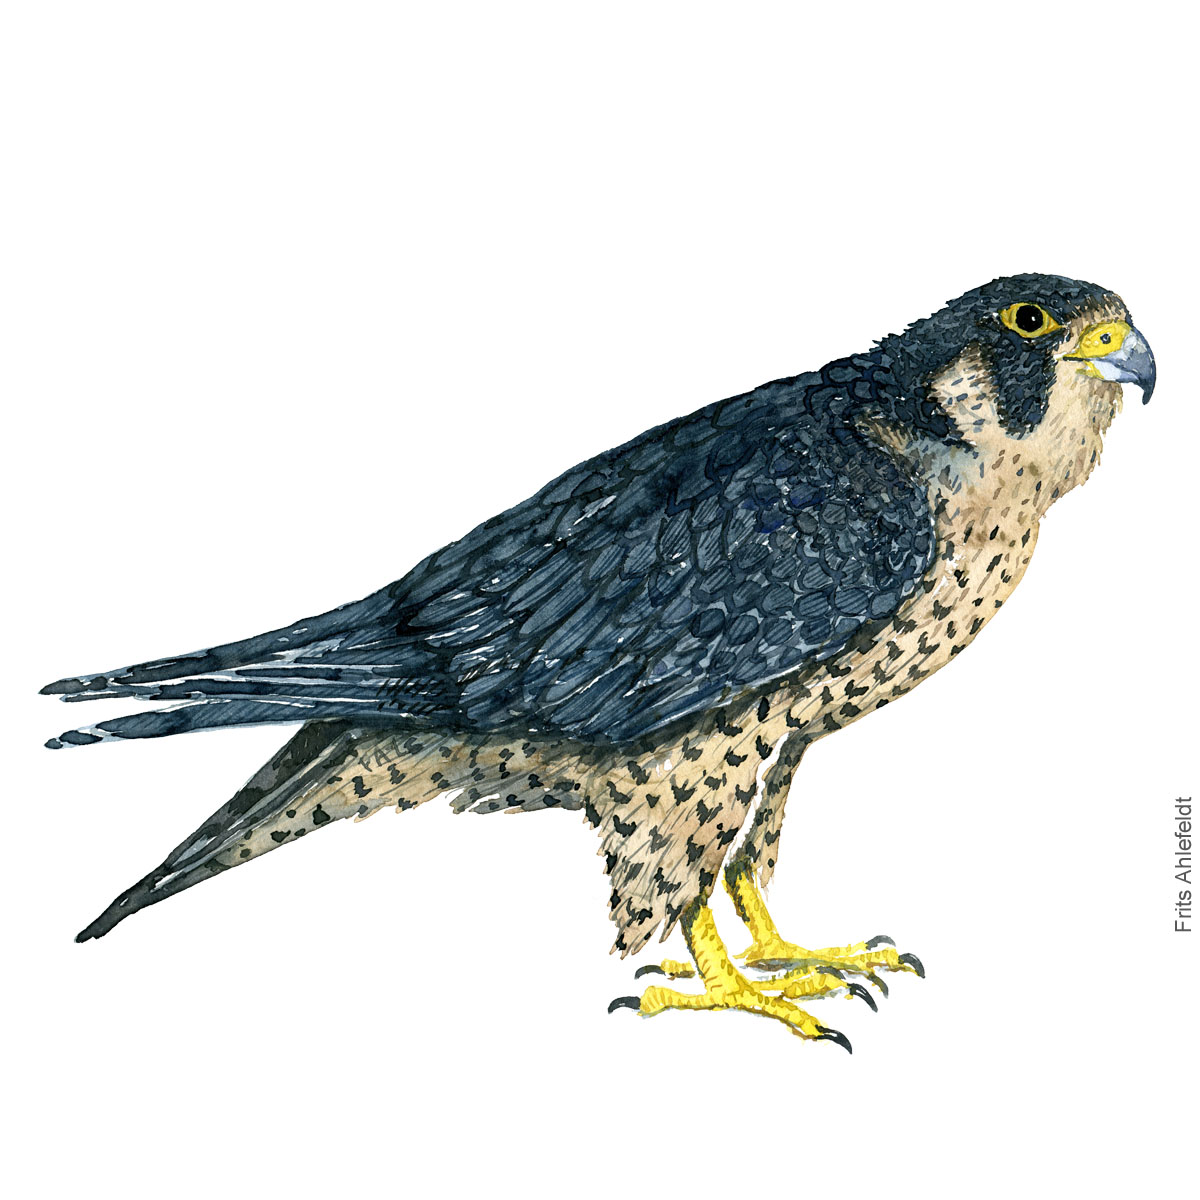 Vandrefalk - Peregrine falcon - Bird painting in watercolor by Frits Ahlefeldt - Fugle akvarel